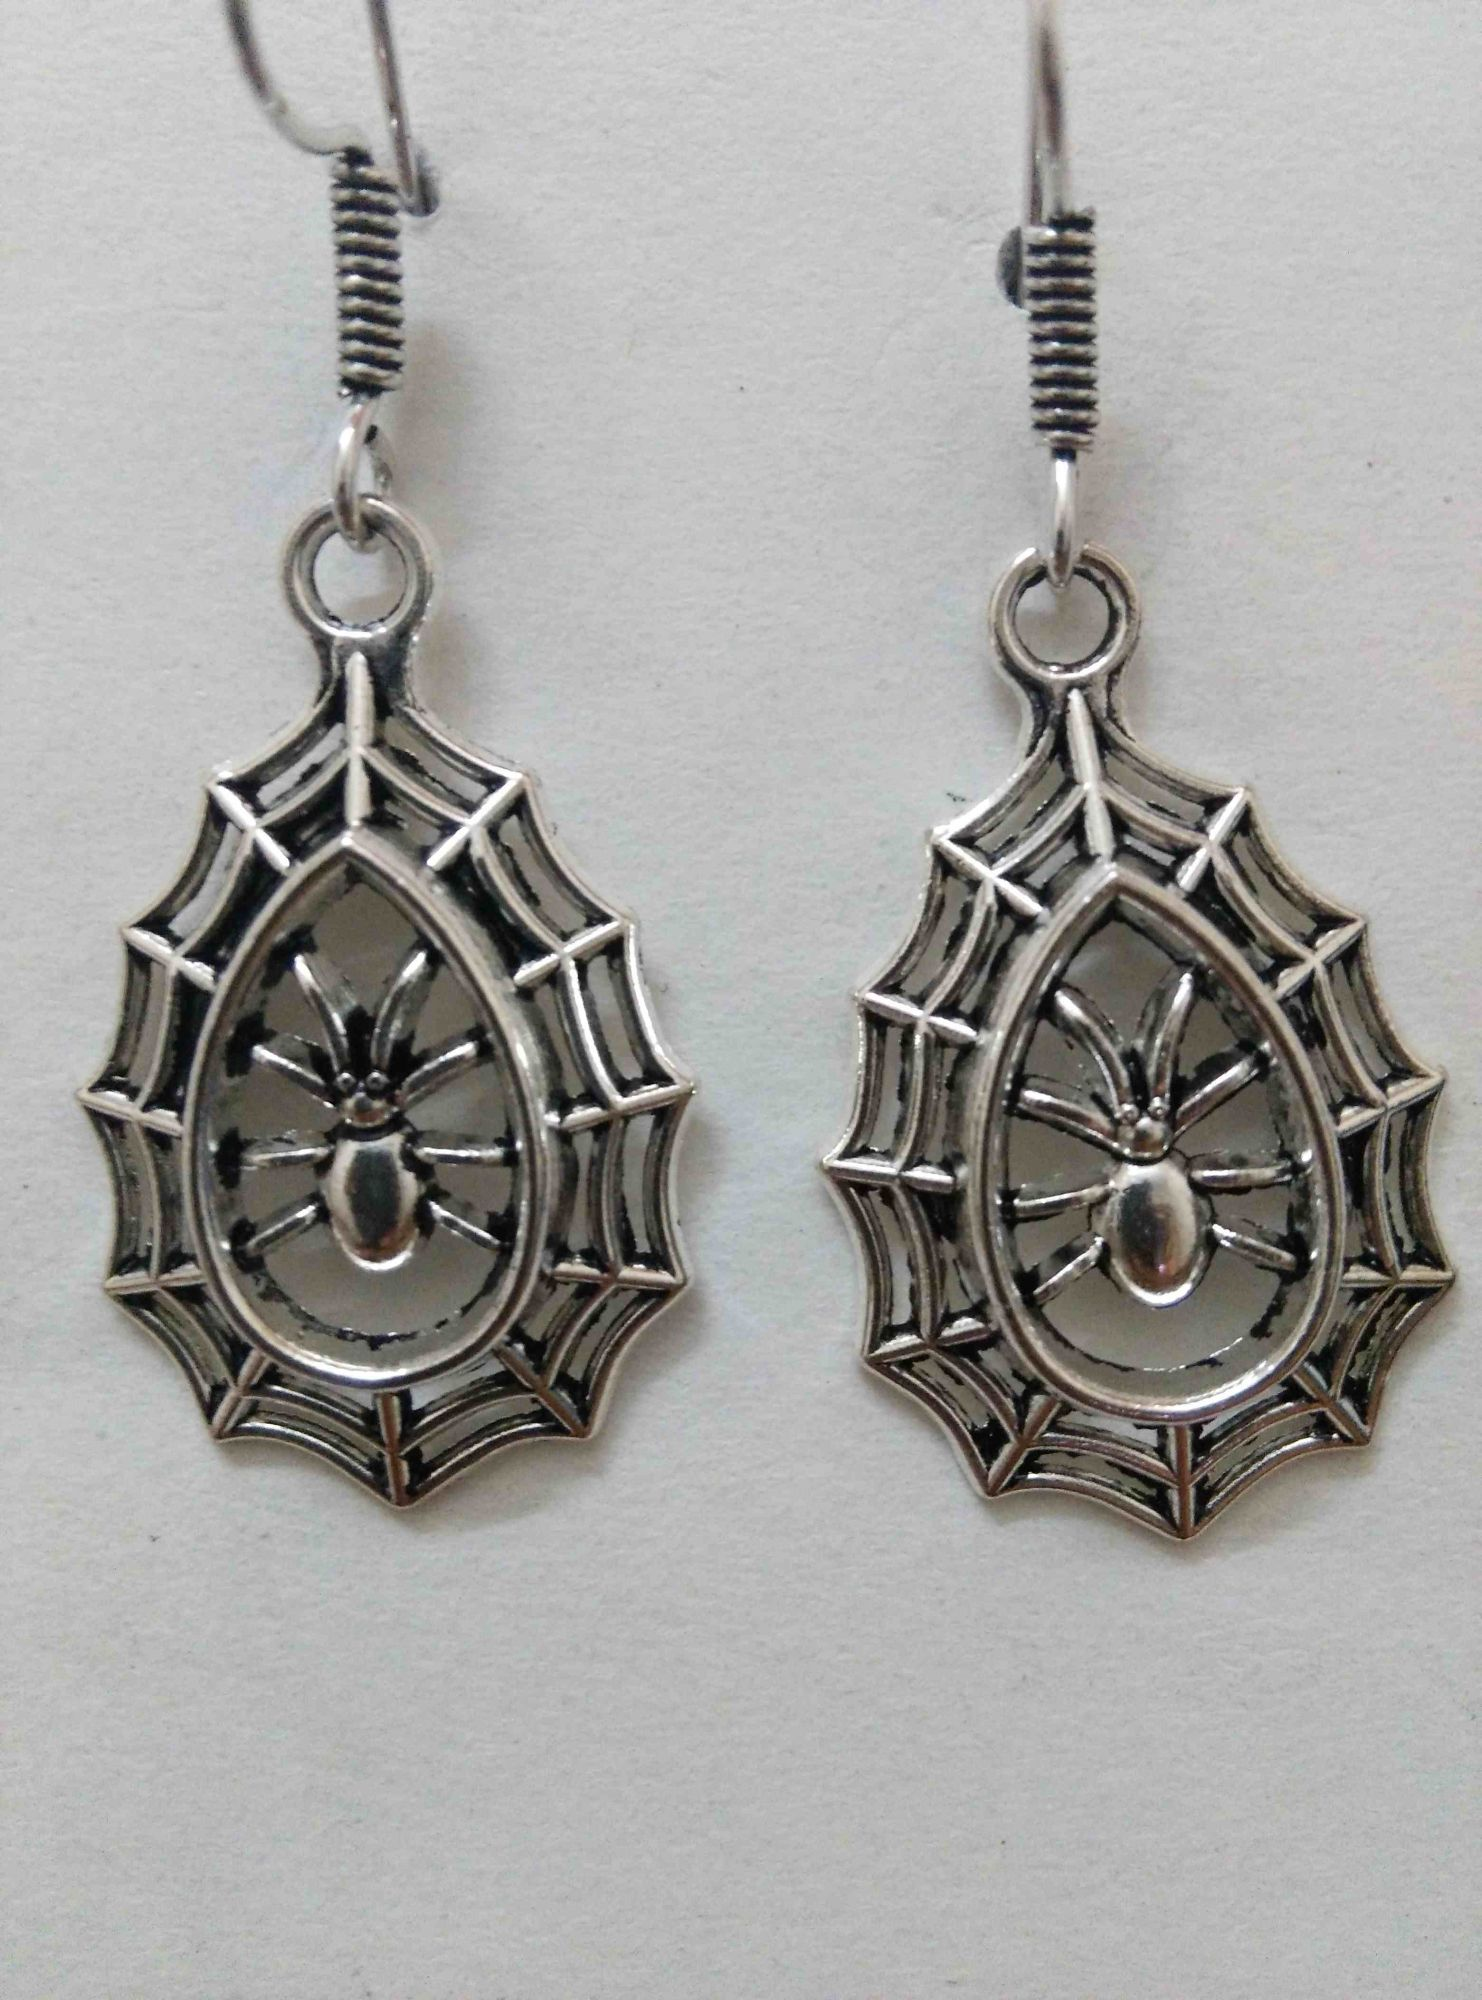 Antique Spider Web Earrings